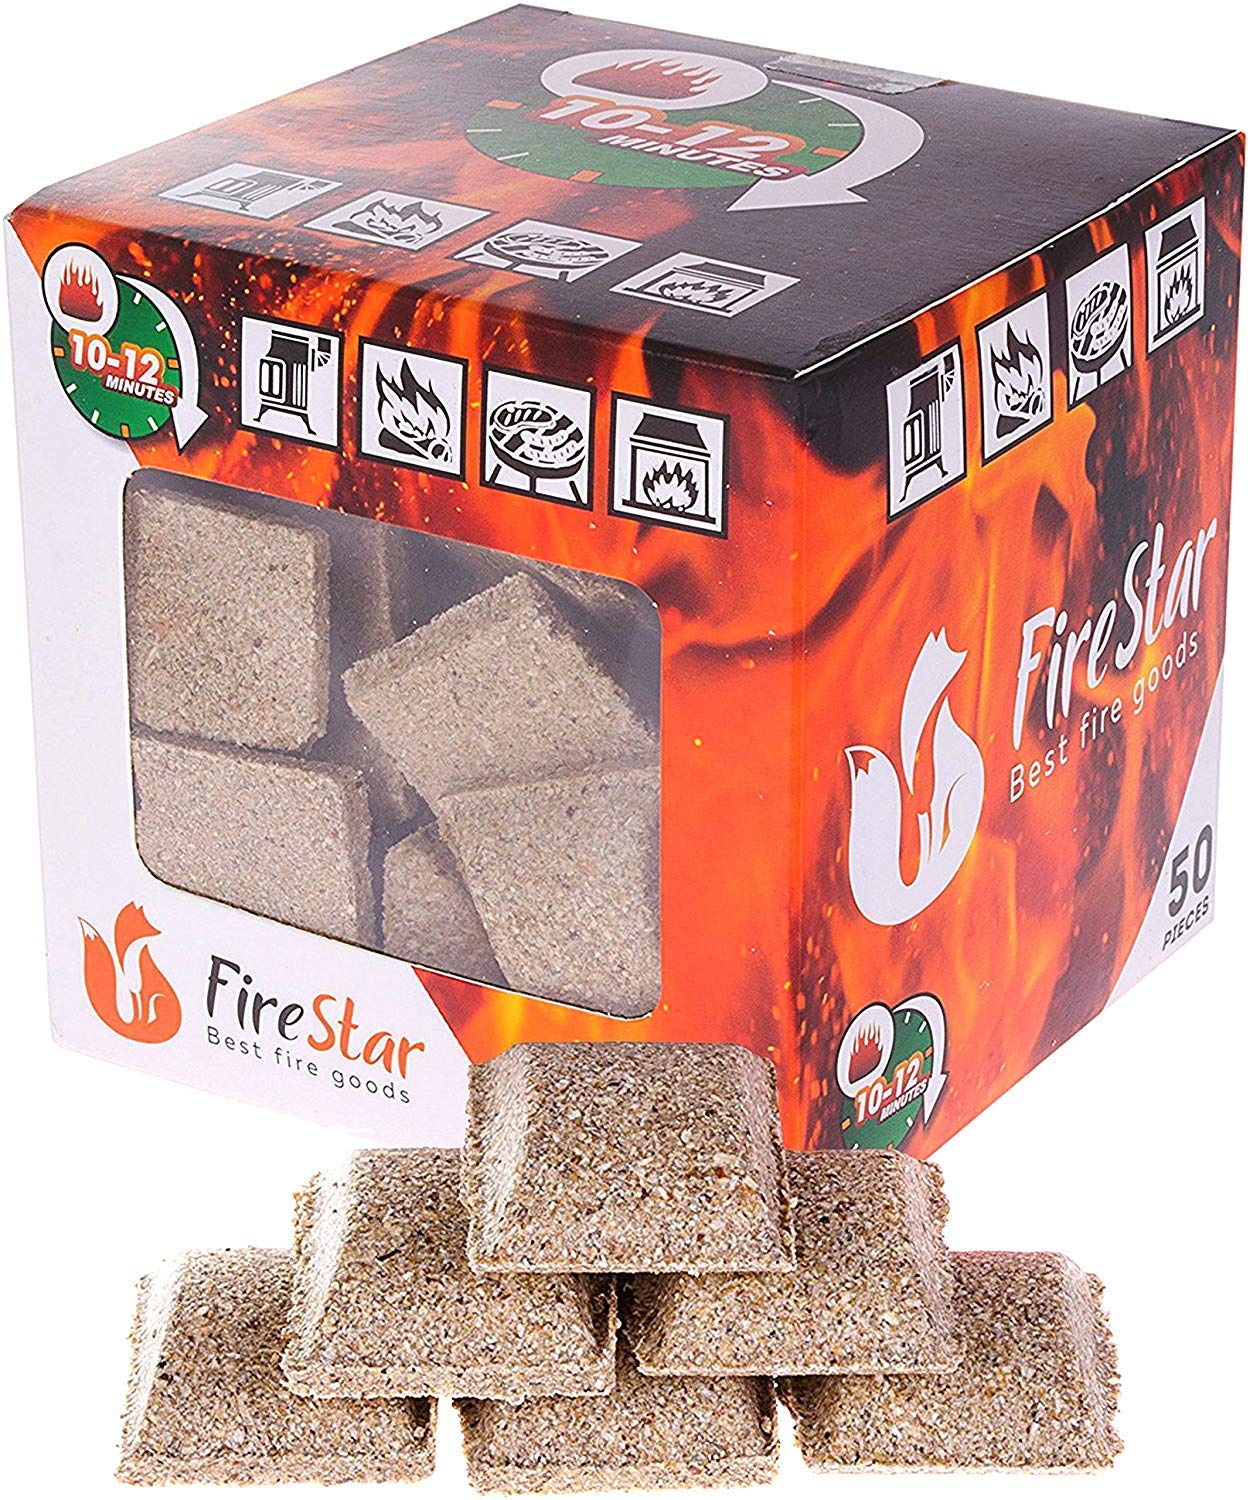 Fire Starter Squares - Firestarter Cubes Pack 50pcs - Charcoal briquette for BBQ, Fireplace and Camping - Fire Starters Made from Wood and Wax - Grill Starter Burns up to 12 min